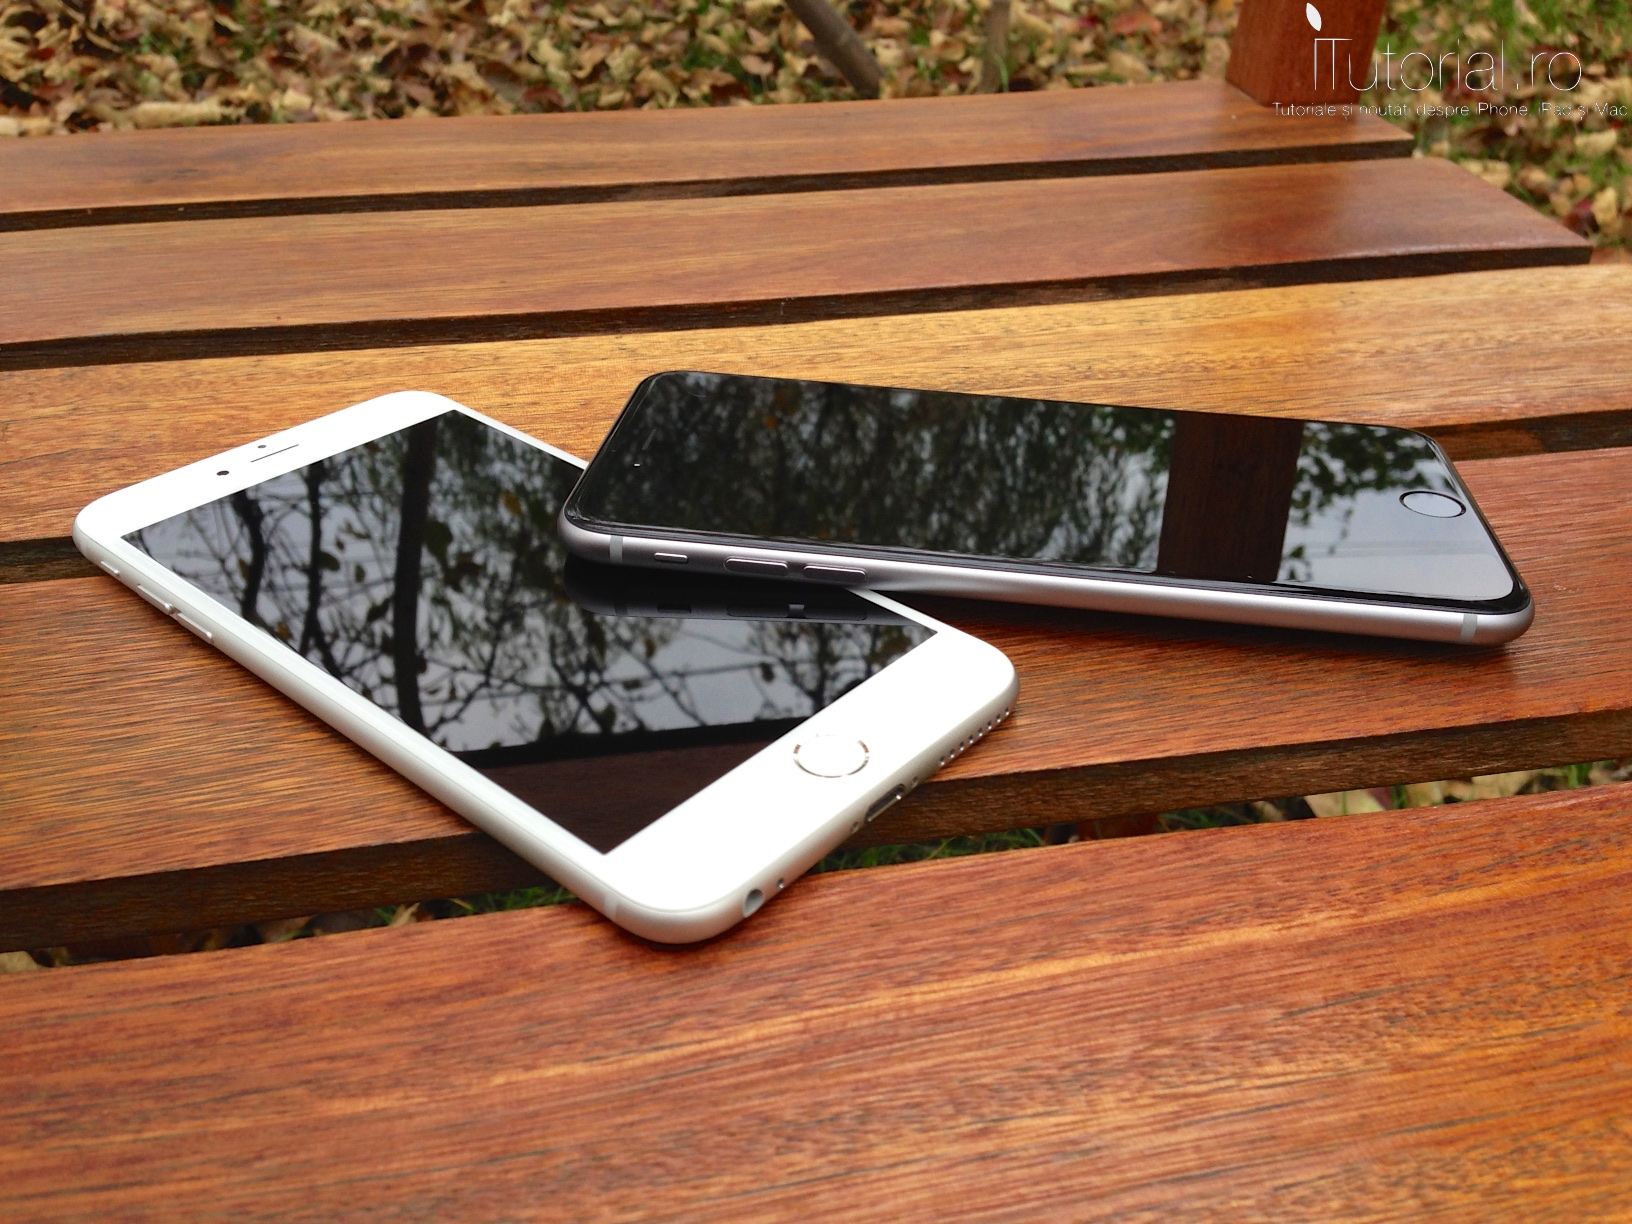 iphone 6 plus review #itutorial.ro (24)